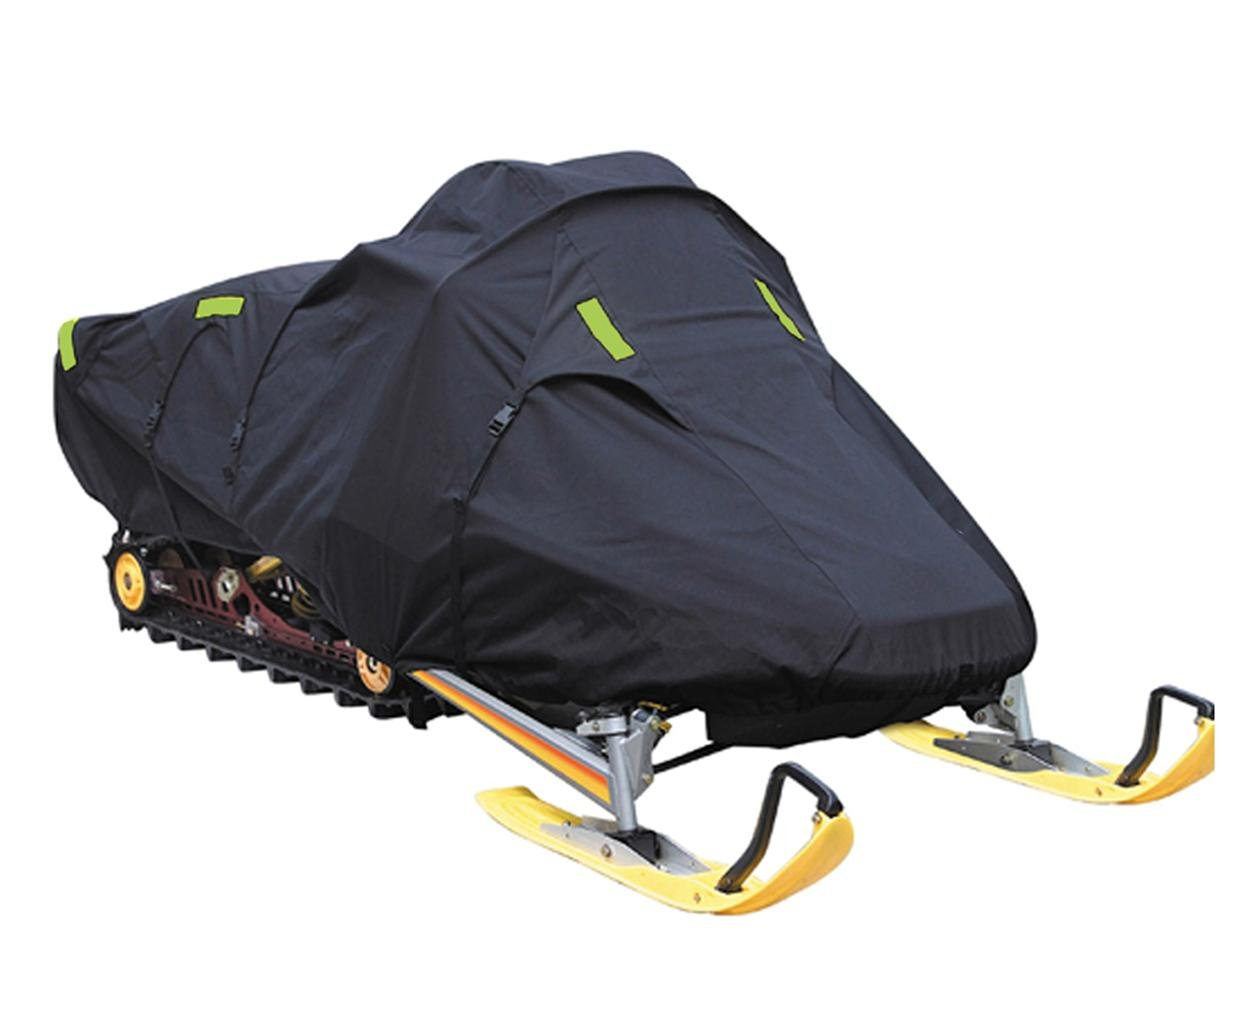 Trailerable Snowmobile Snow Machine Sled Cover Polaris 900 Fusion 50th Anniversary Edition 2005 by SBU